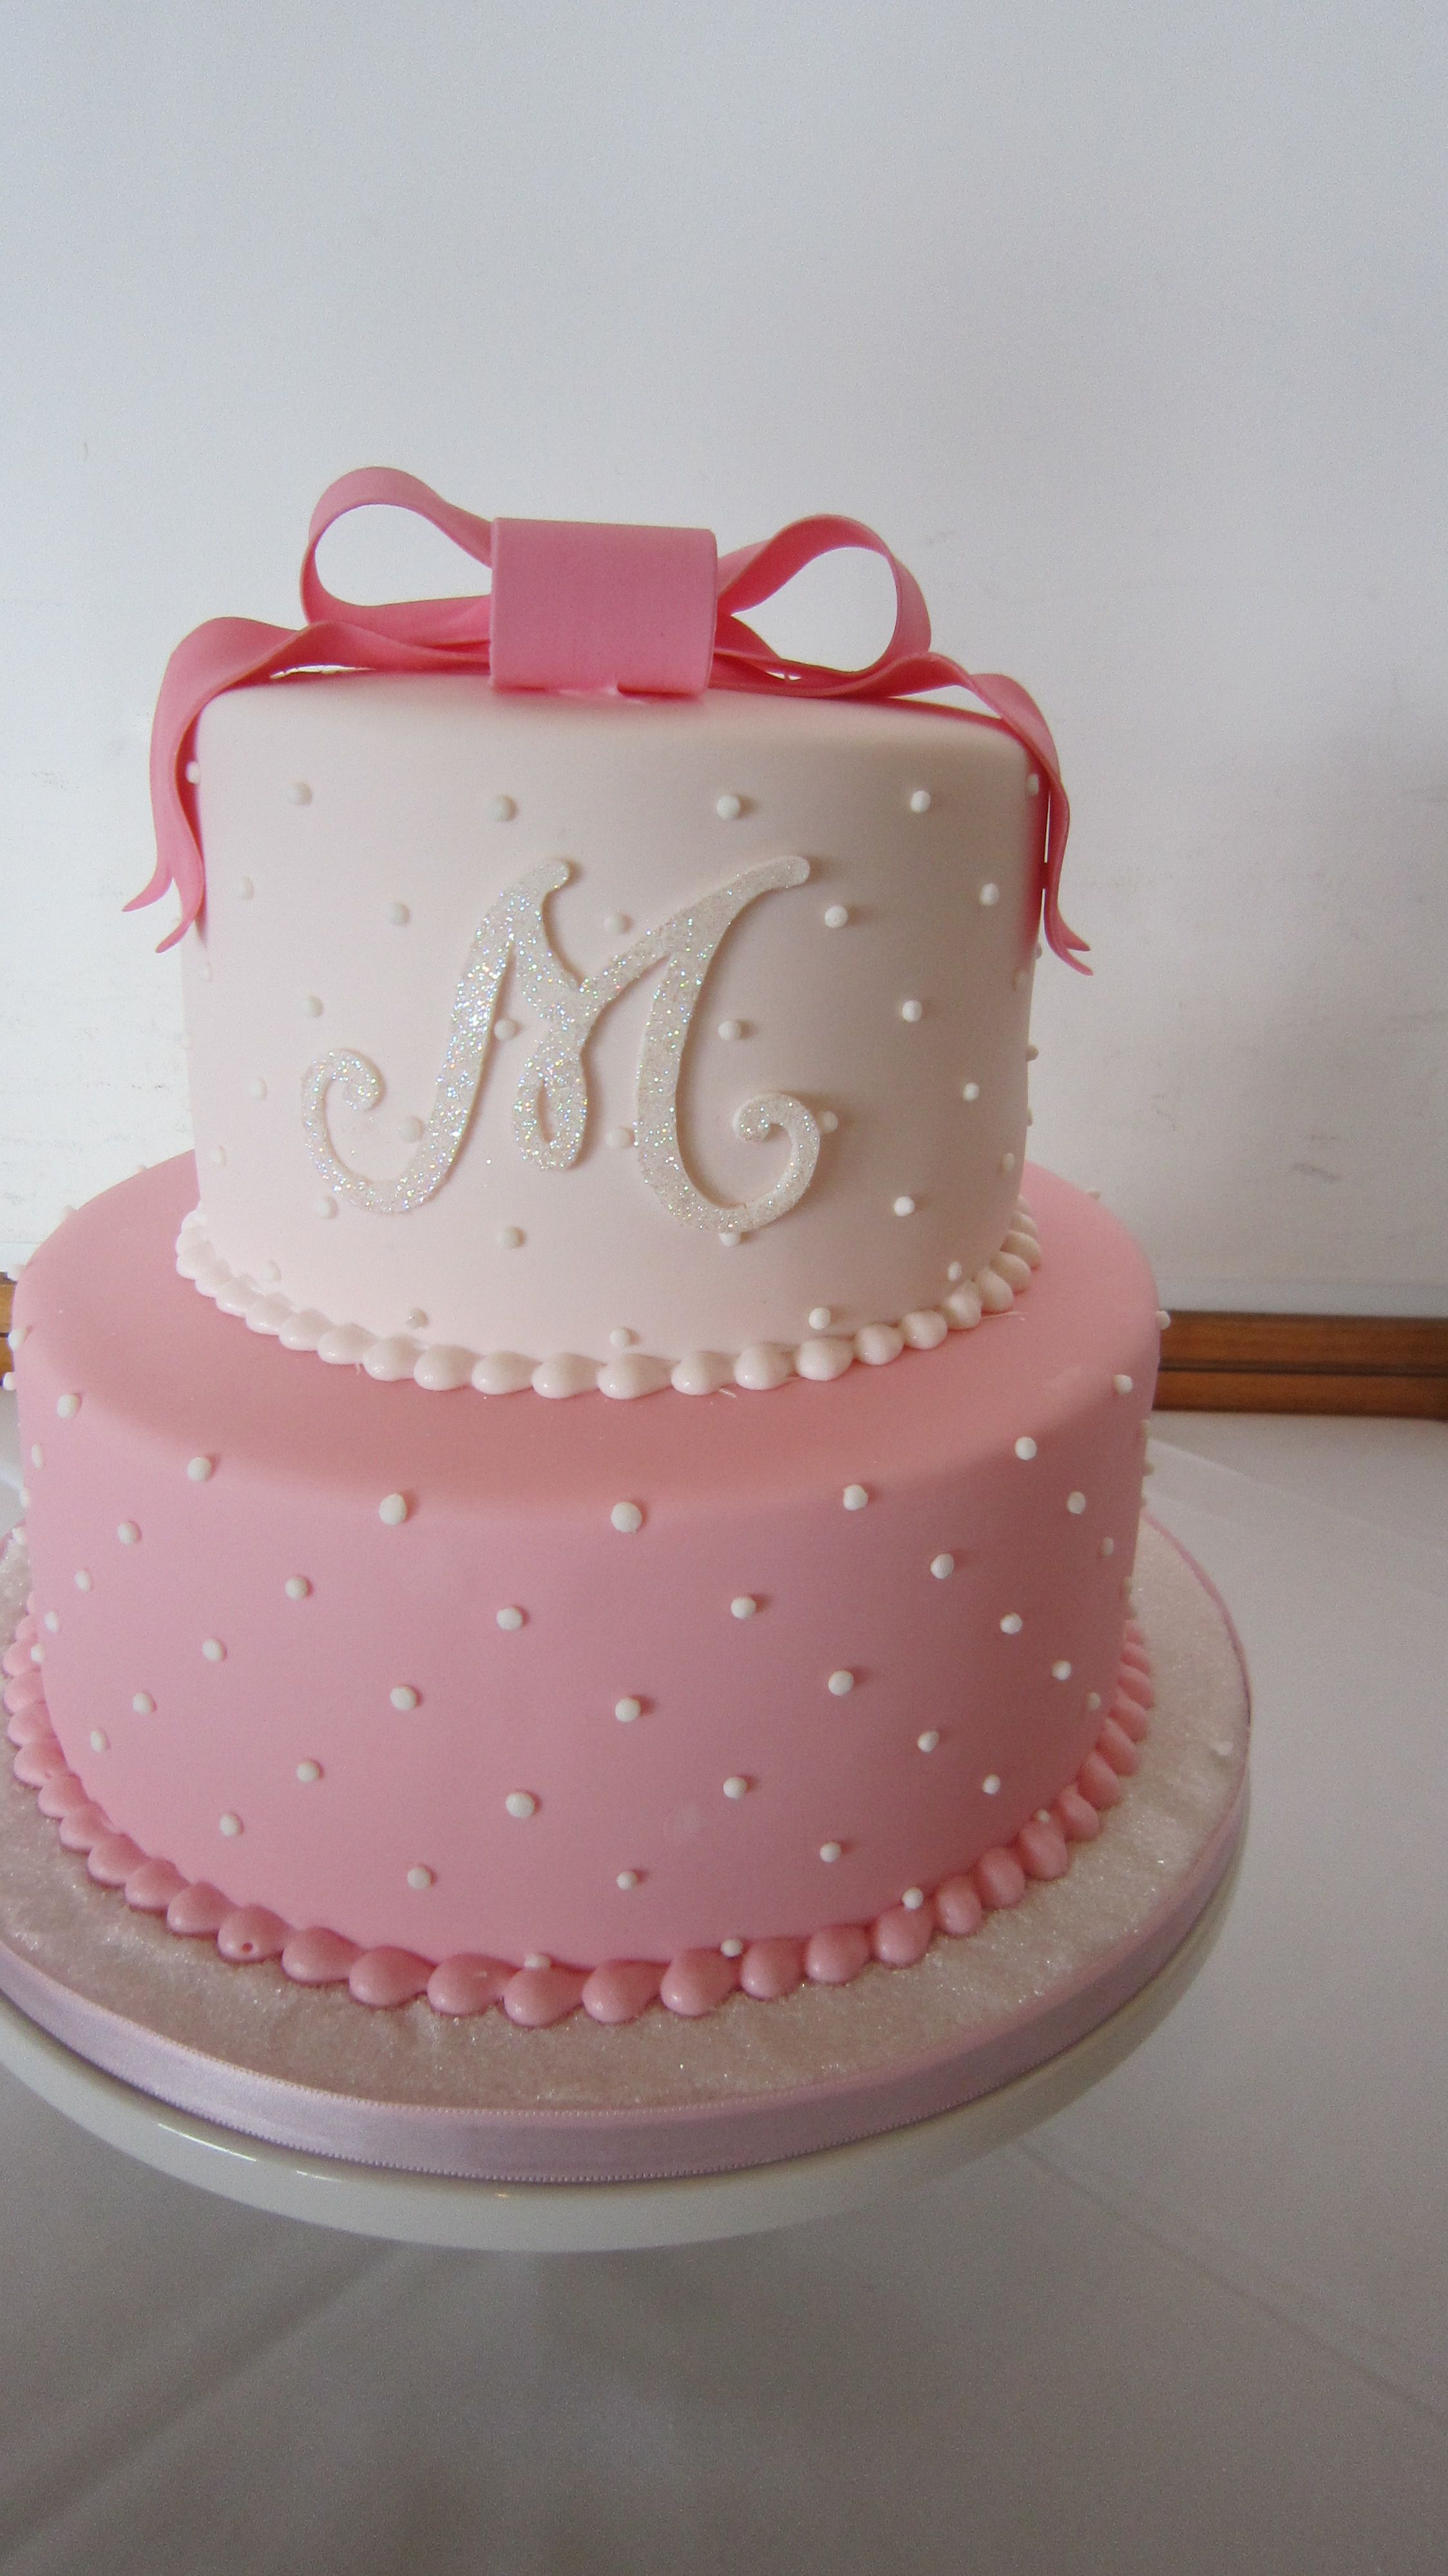 Possible cake?? Just bottom tier